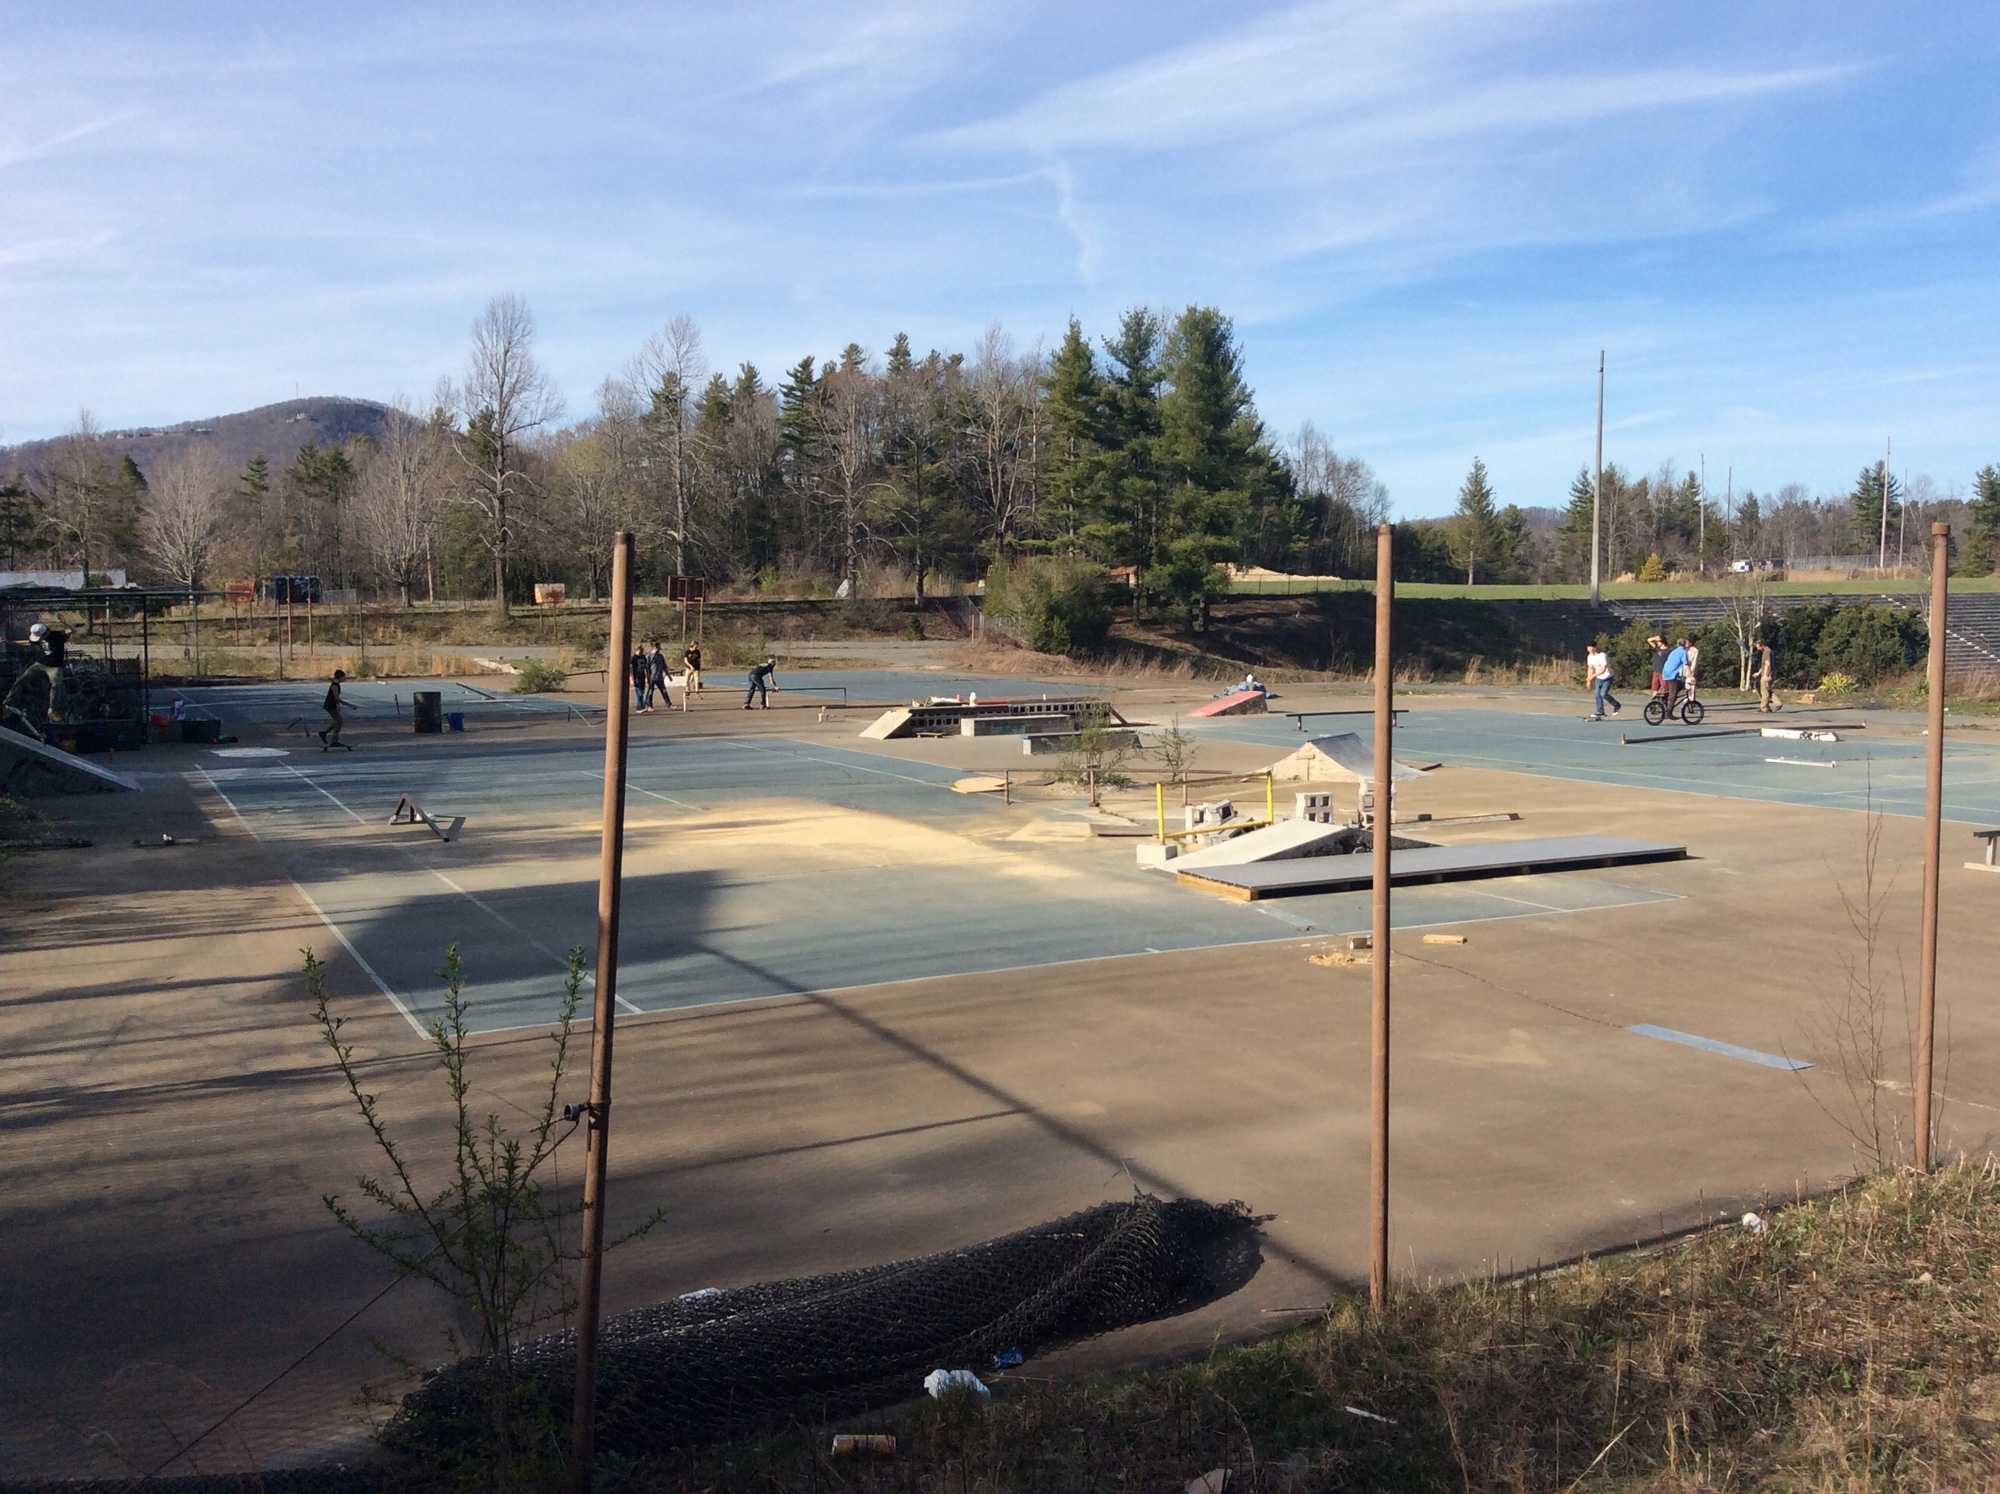 Diy skate park in jeopardy by asu property purchase the diy skate park in jeopardy by asu property purchase the appalachian online solutioingenieria Images